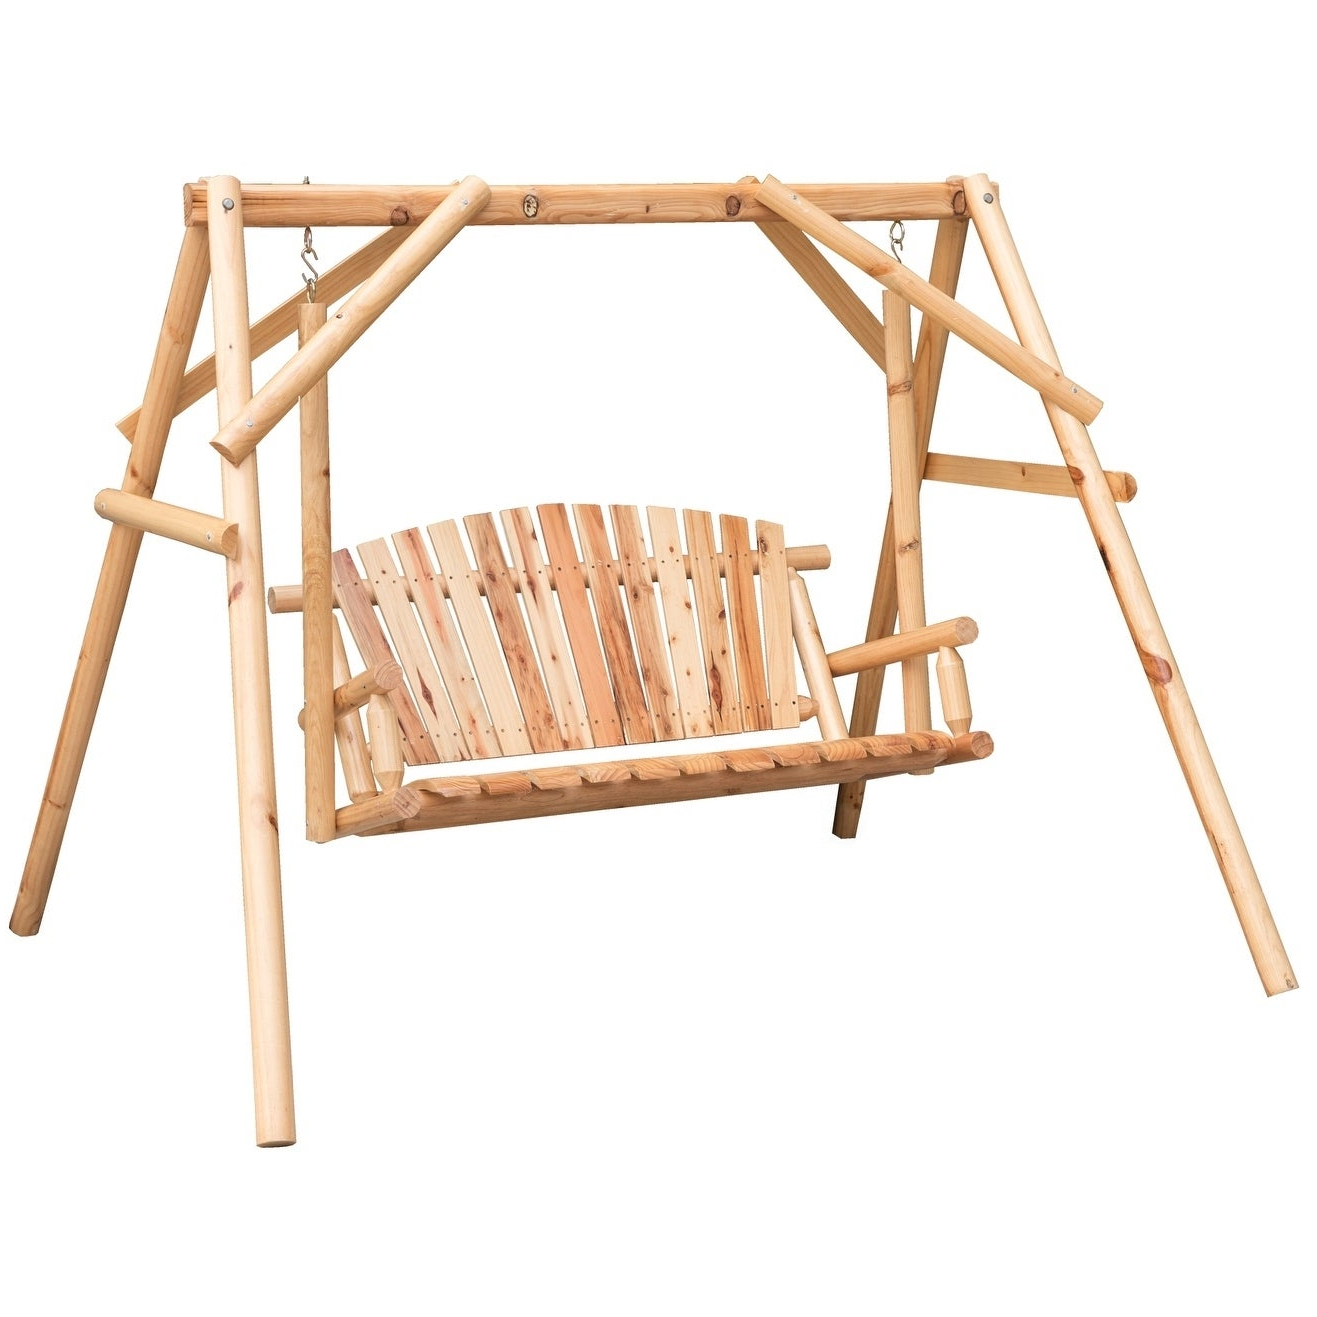 Wooden A Frame 2 Person Outdoor Porch Patio Swing Log Wood Chair Bench Regarding Widely Used 2 Person Light Teak Oil Wood Outdoor Swings (Gallery 11 of 30)